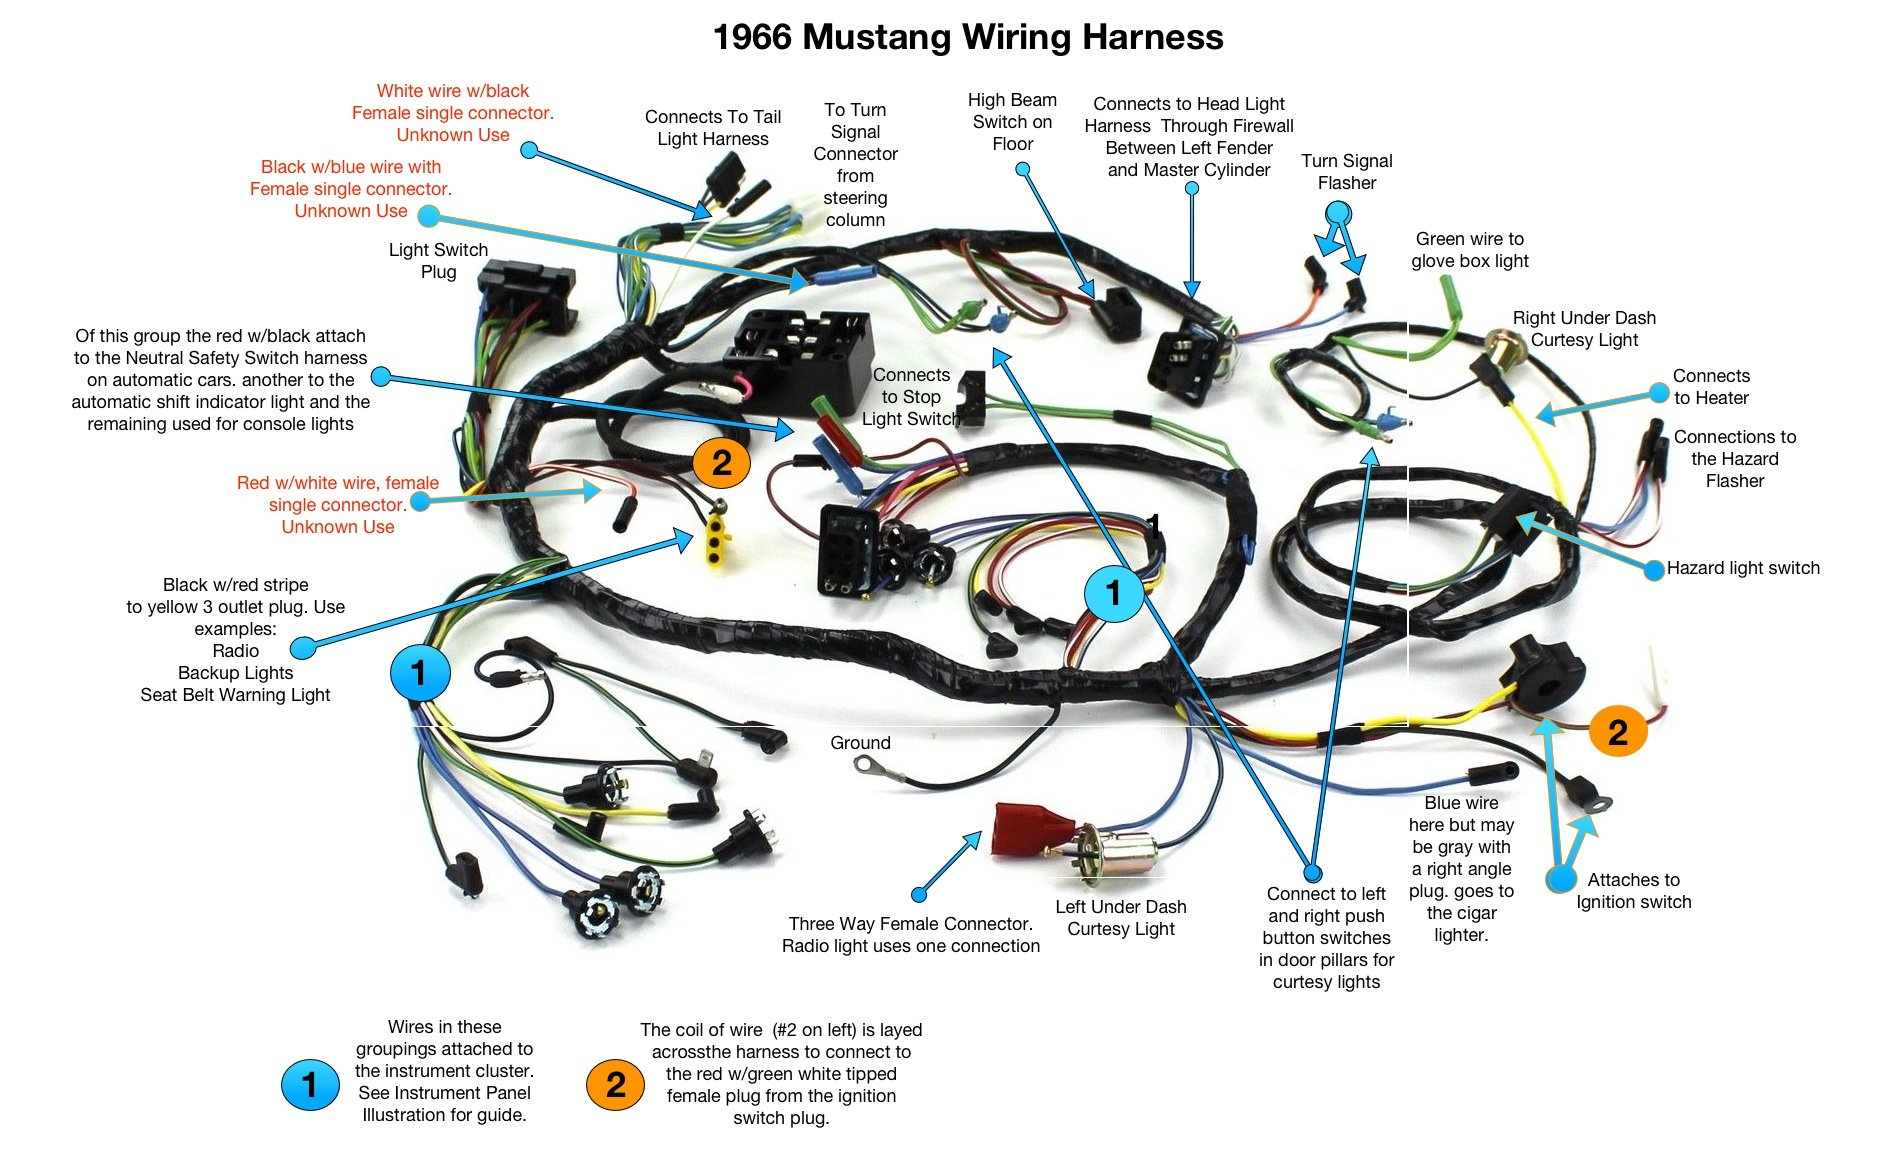 86 mustang wiring harness archive of automotive wiring diagram \u2022 1970 chevy camaro wiring harness 2003 mustang wiring harness wiring diagram schematics rh thyl co uk 1986 mustang gt wiring harness